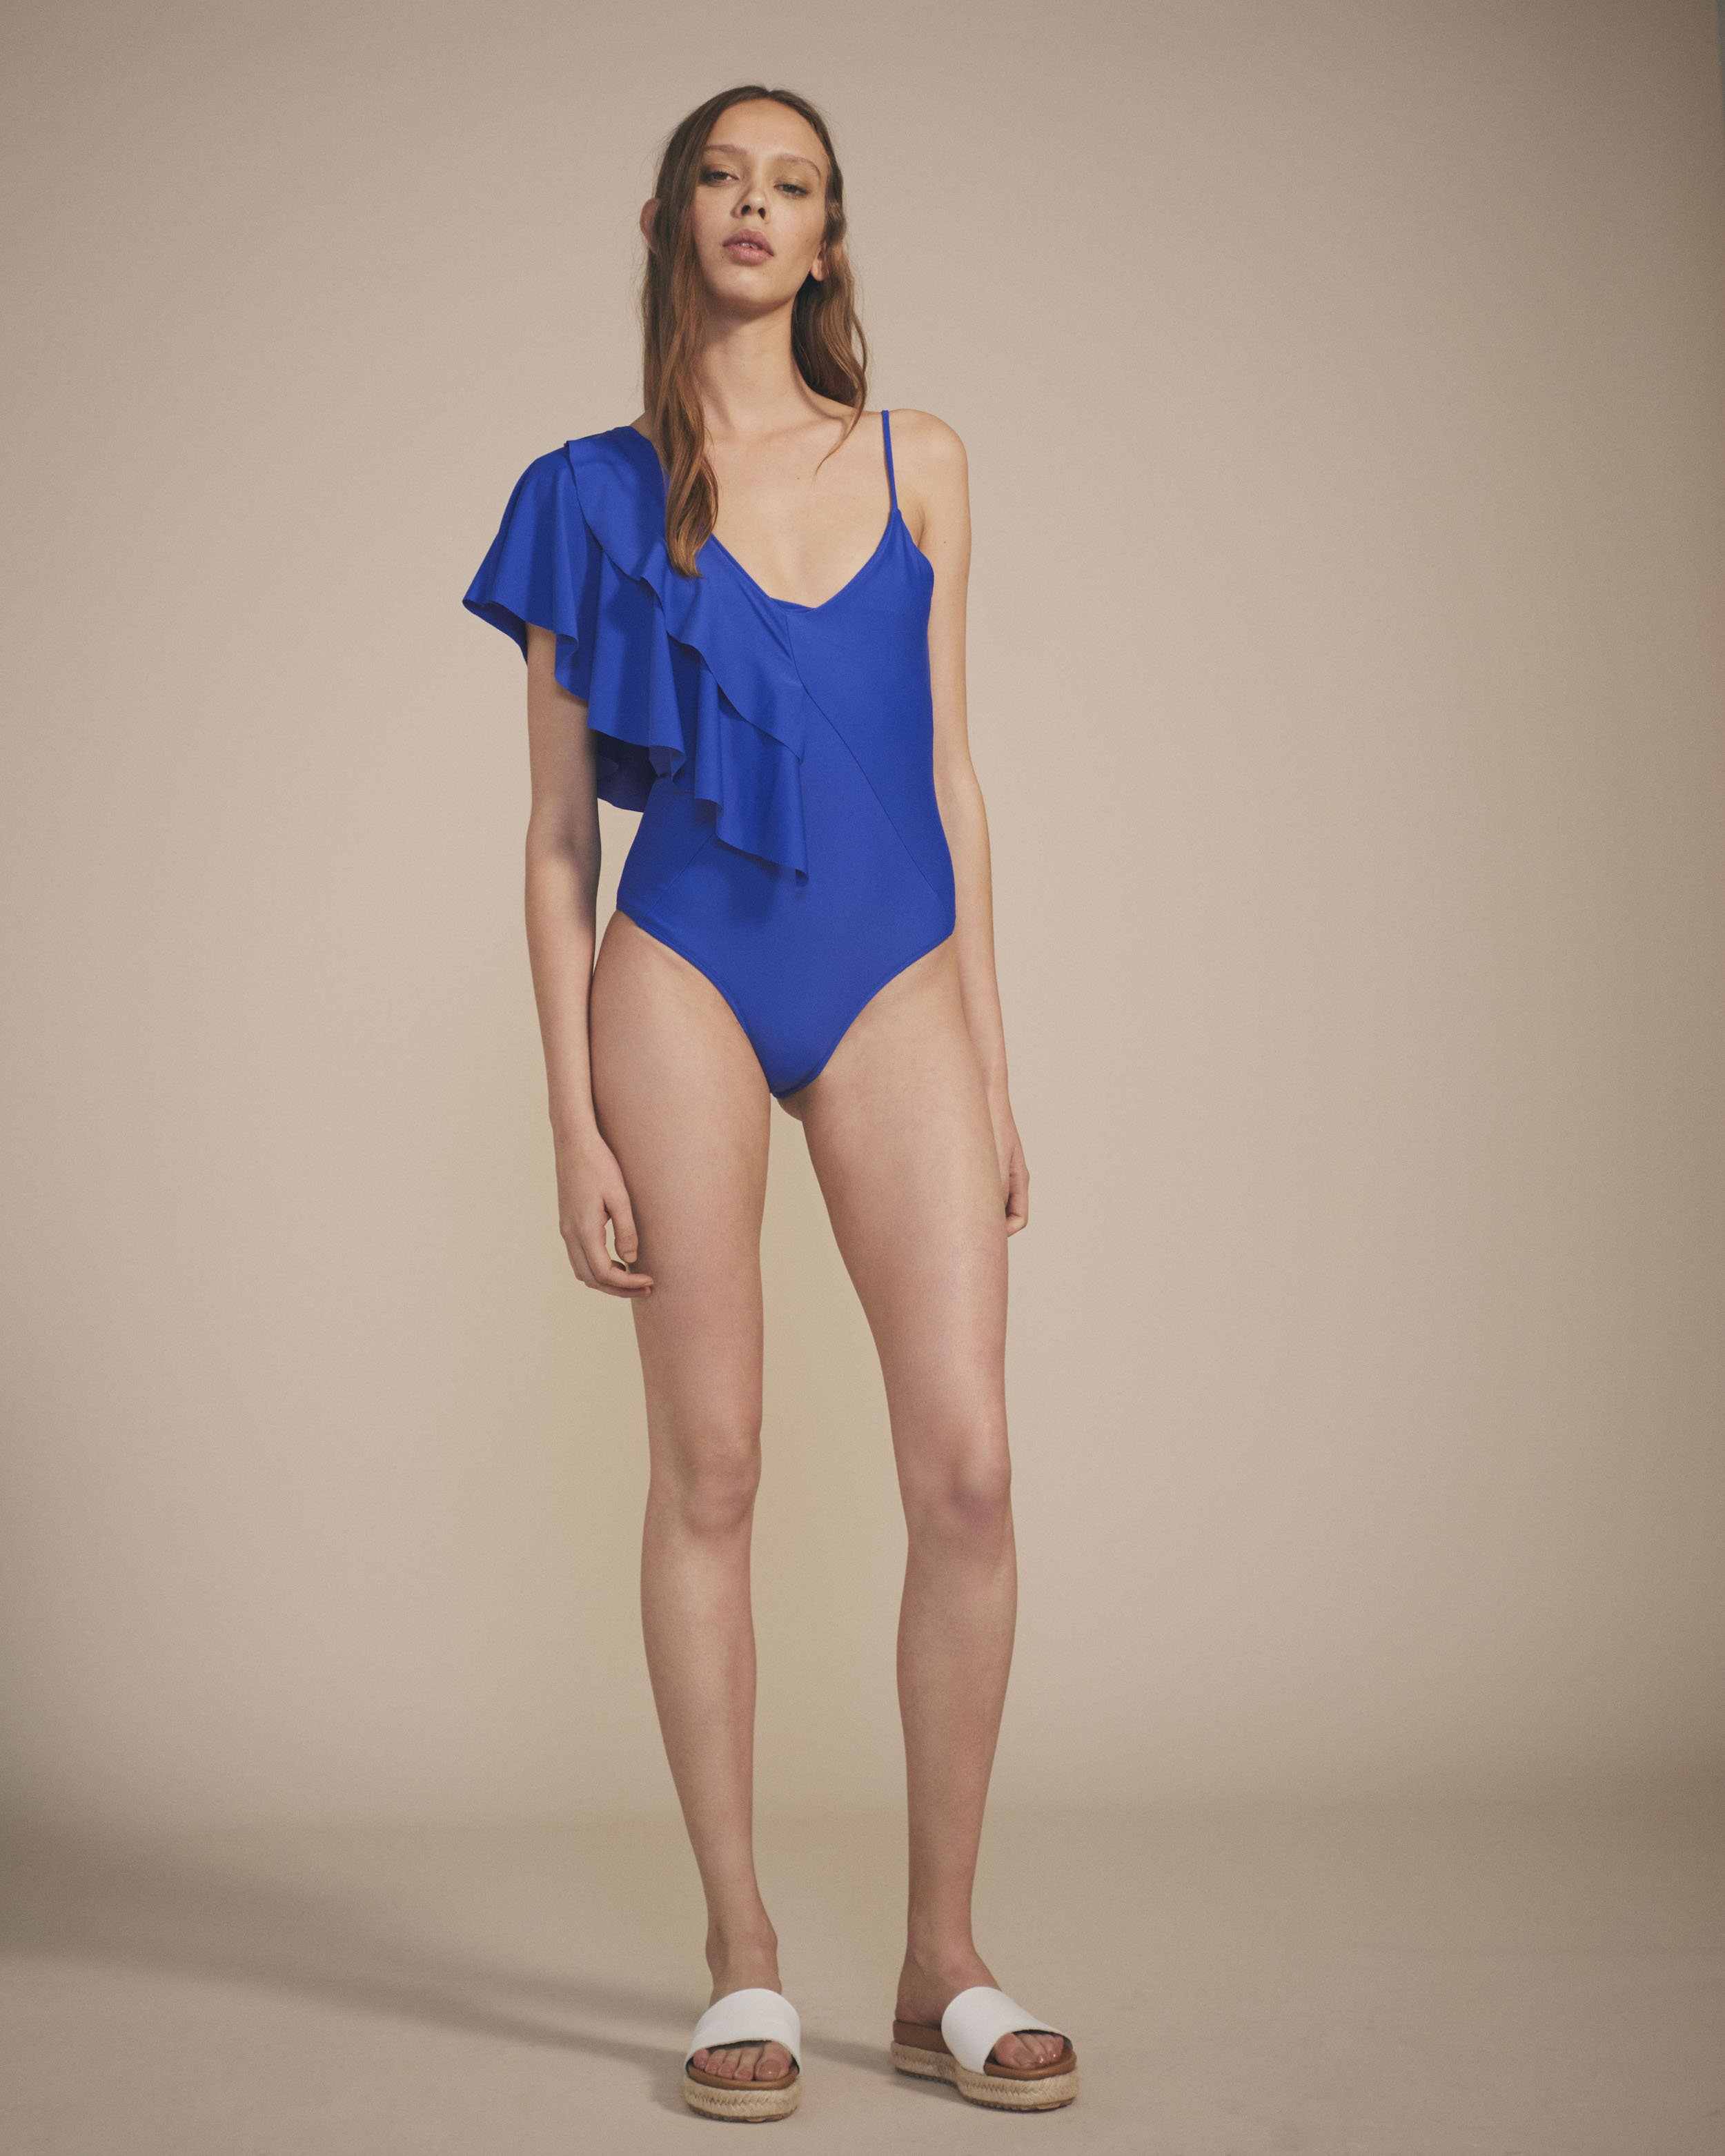 77b77c70af Mastectomy Swimwear for the Fashion-Conscious - The Breast Life